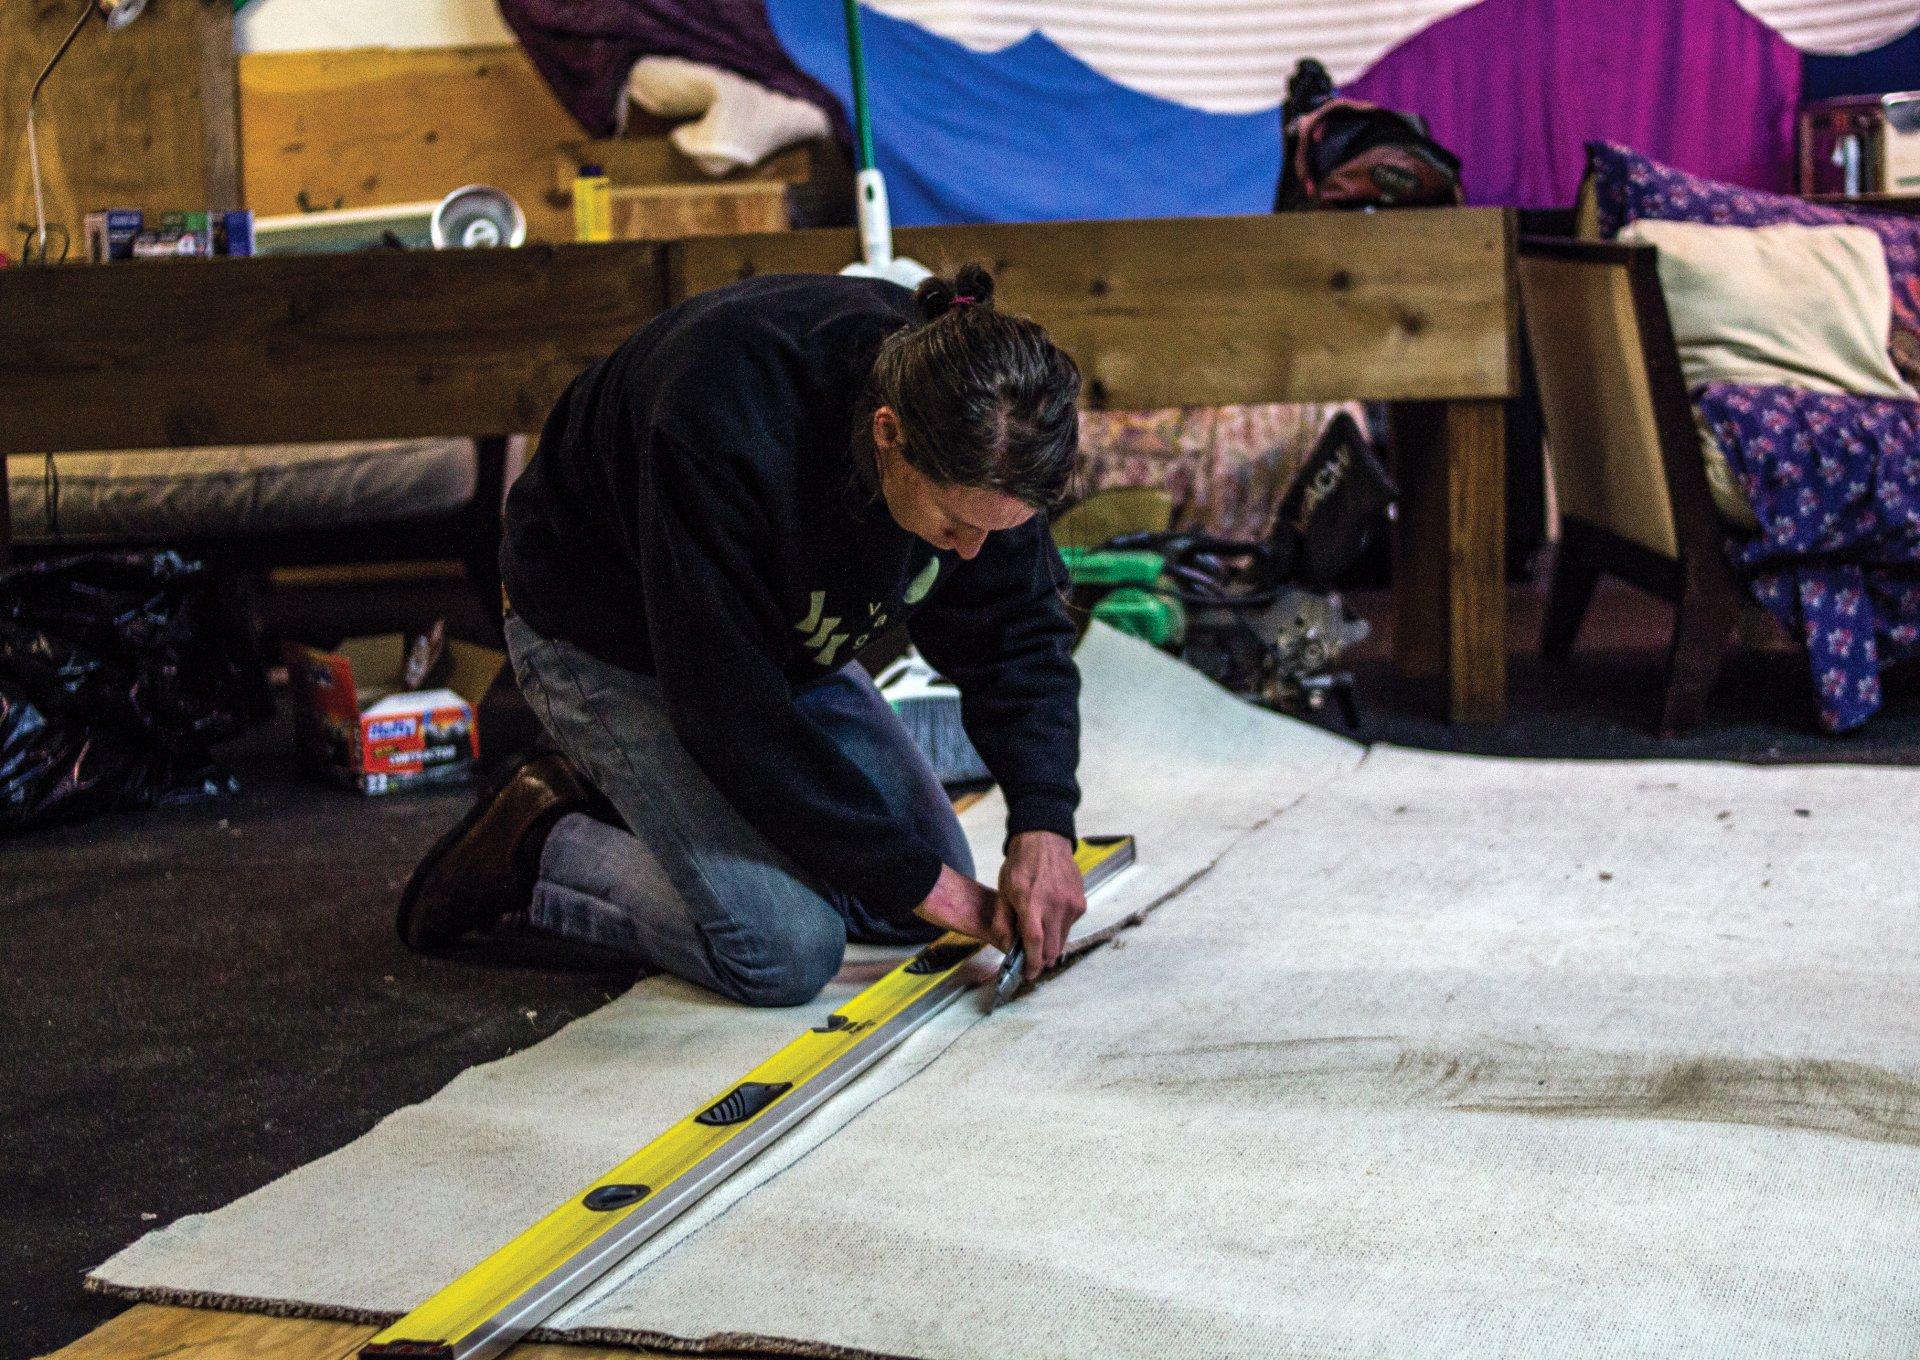 (Photo by Tony Wallin) Humboldt State University alumni Zev Smith-Danford cuts carpet for the stage June 10, 2015 inside Outer Space June 10 an all-ages safe and sober community space. Smith-Danford is a co-creator of the Breakfast All Day (B.A.D.) collective that calls Outer Space home.